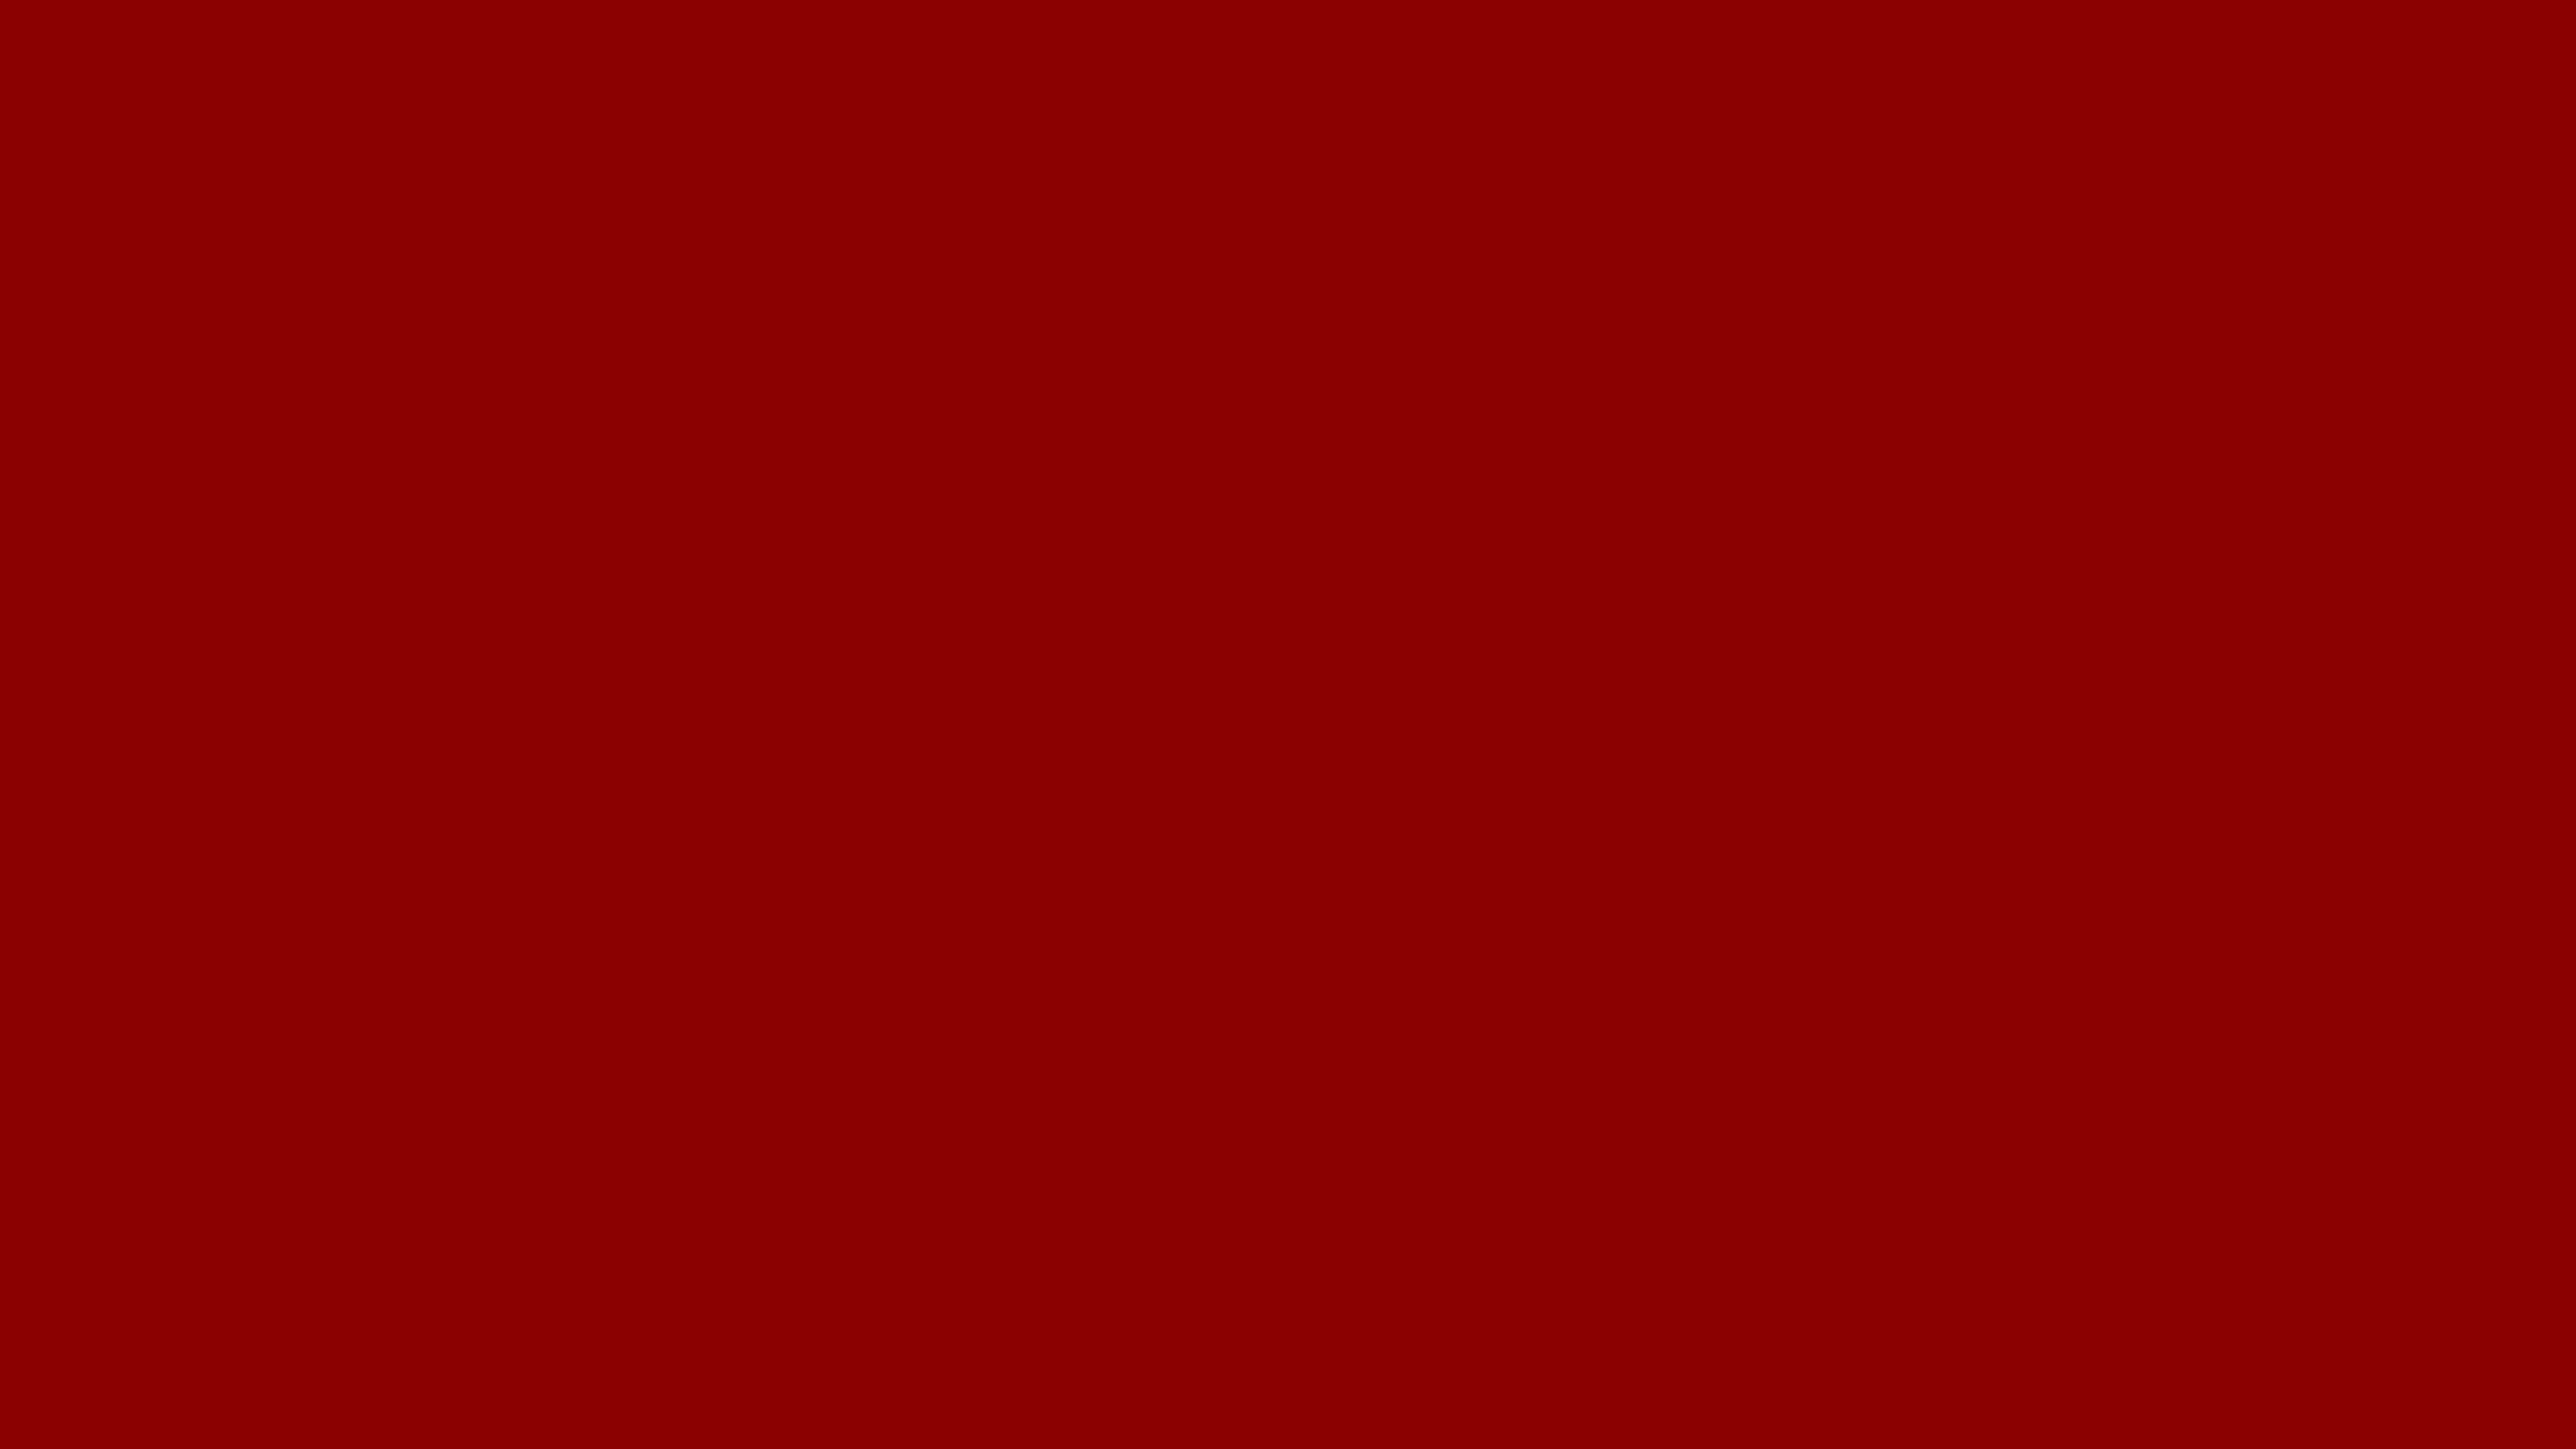 3840x2160 Dark Red Solid Color Background